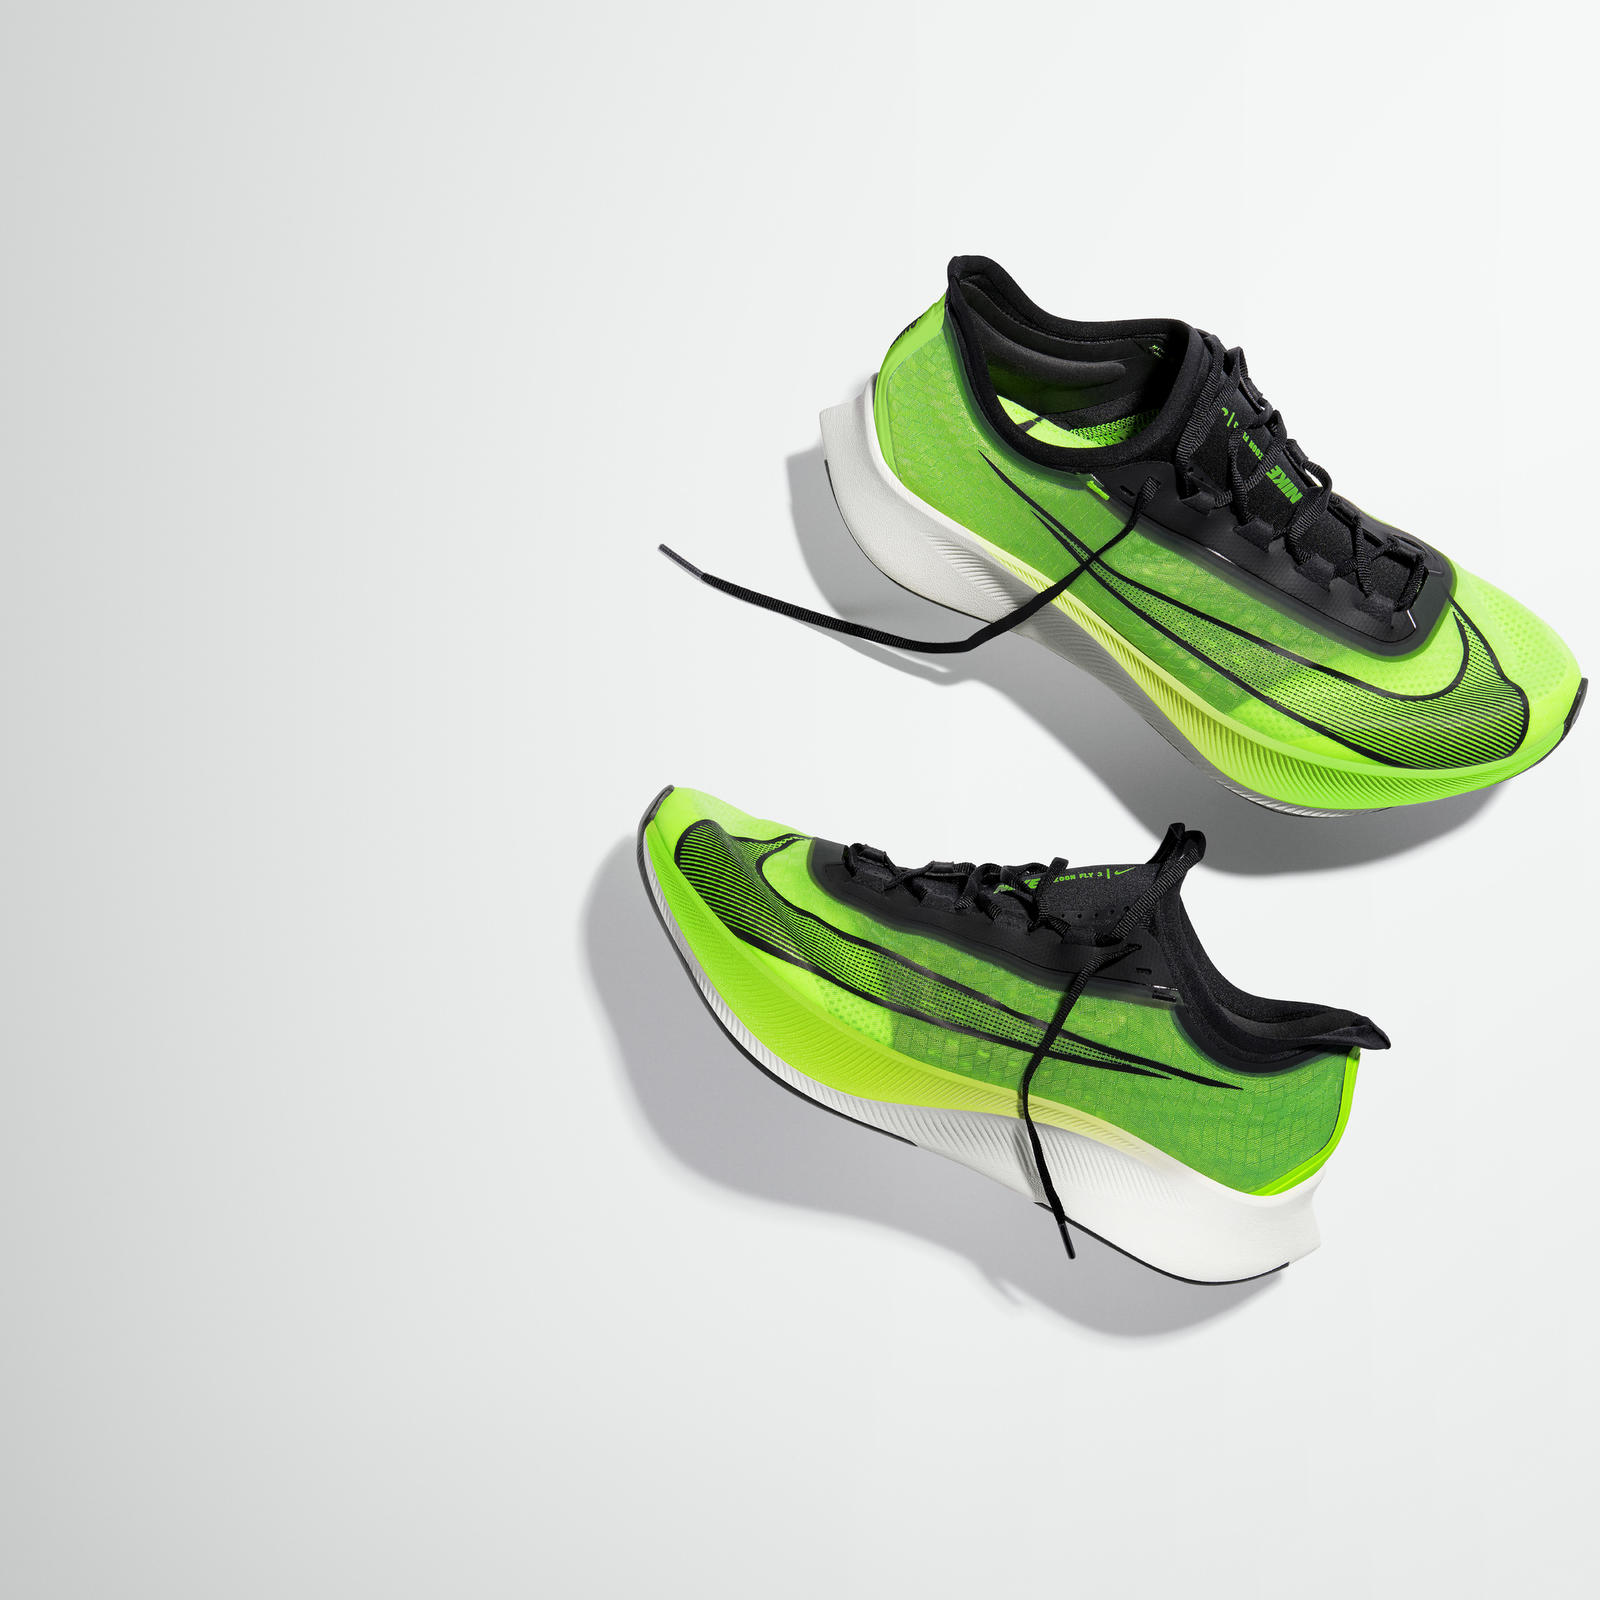 Nike Air Zoom Pegasus 36 Nike Zoom Pegasus Turbo 2 Nike ZoomX Vaporfly Next% Nike Zoom Fly 3  7